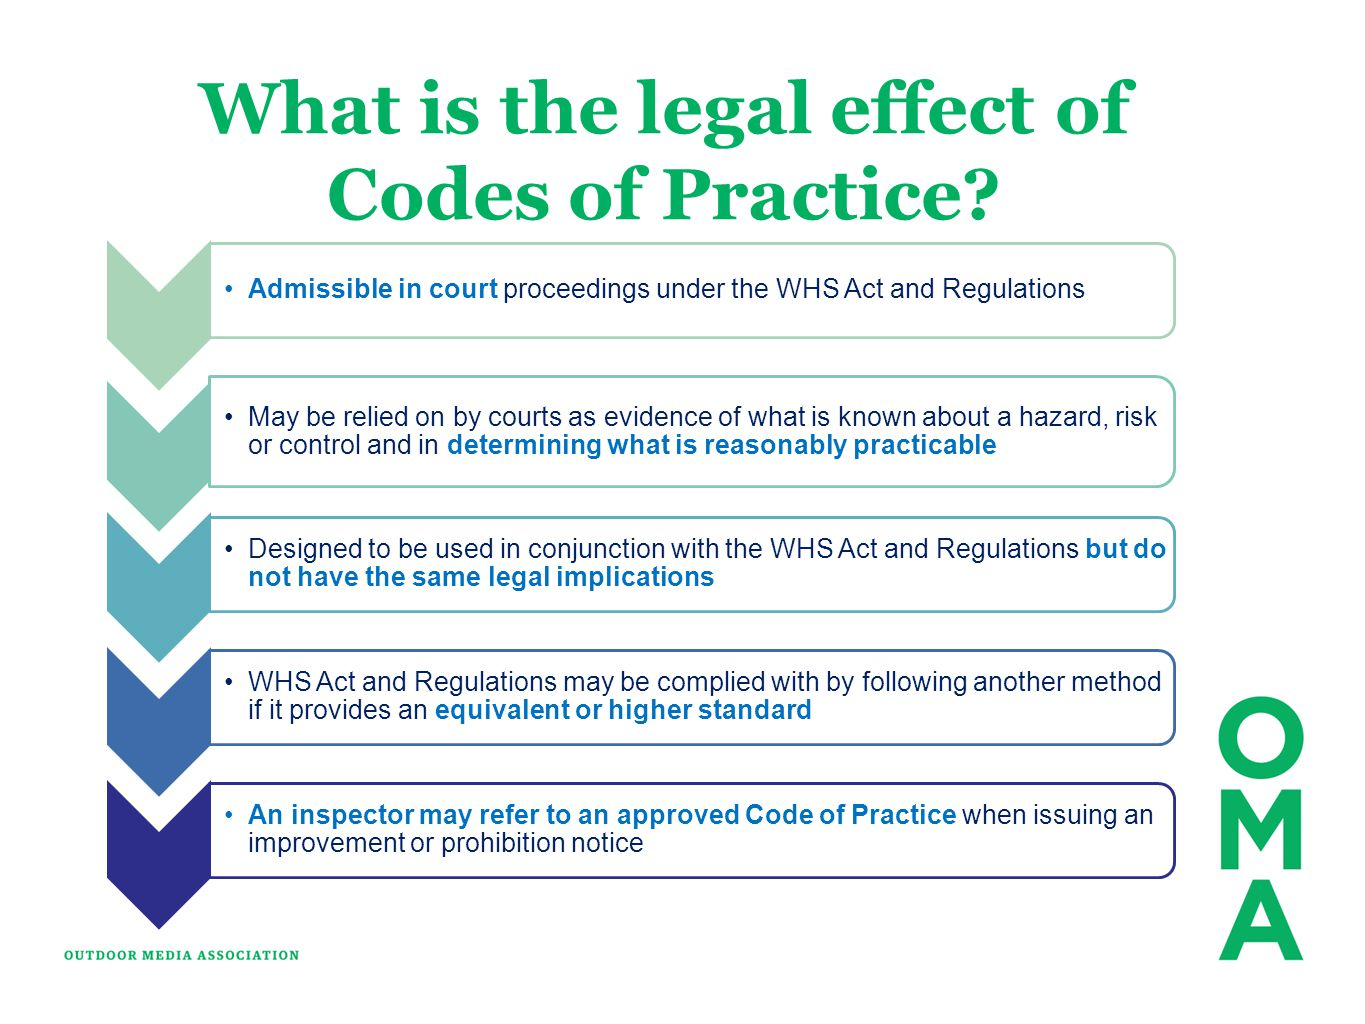 What is the legal effect of